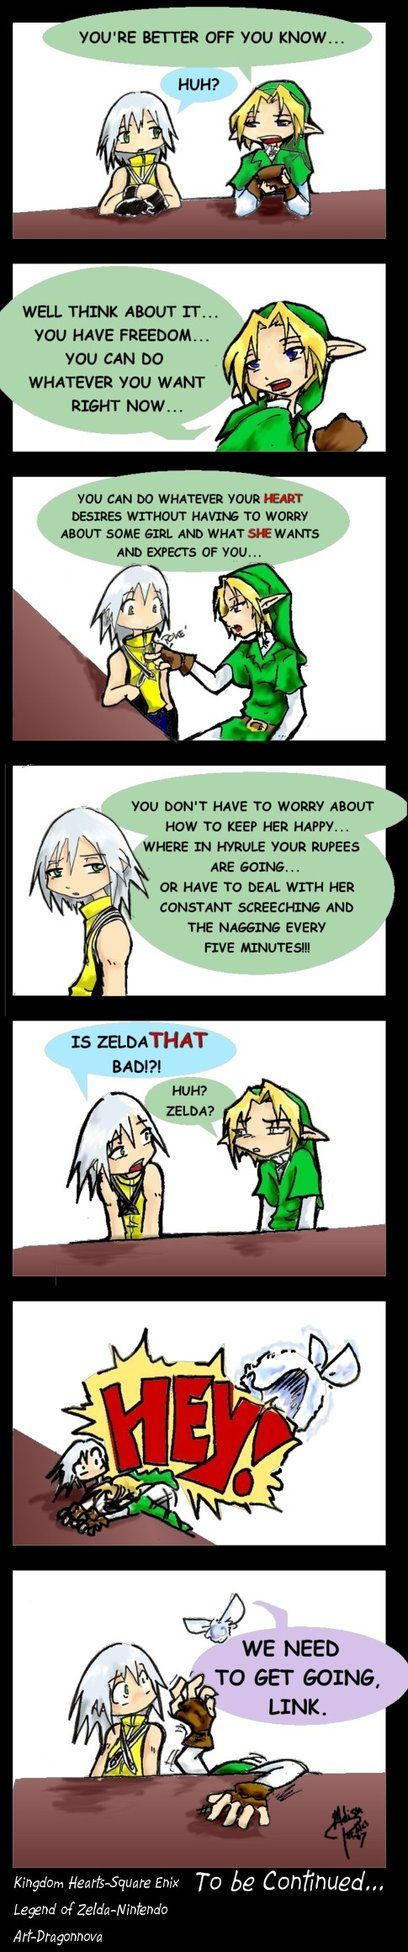 Poor Link... But he's so outspoken in this one. It's.. weird. LoL, Riku help him!